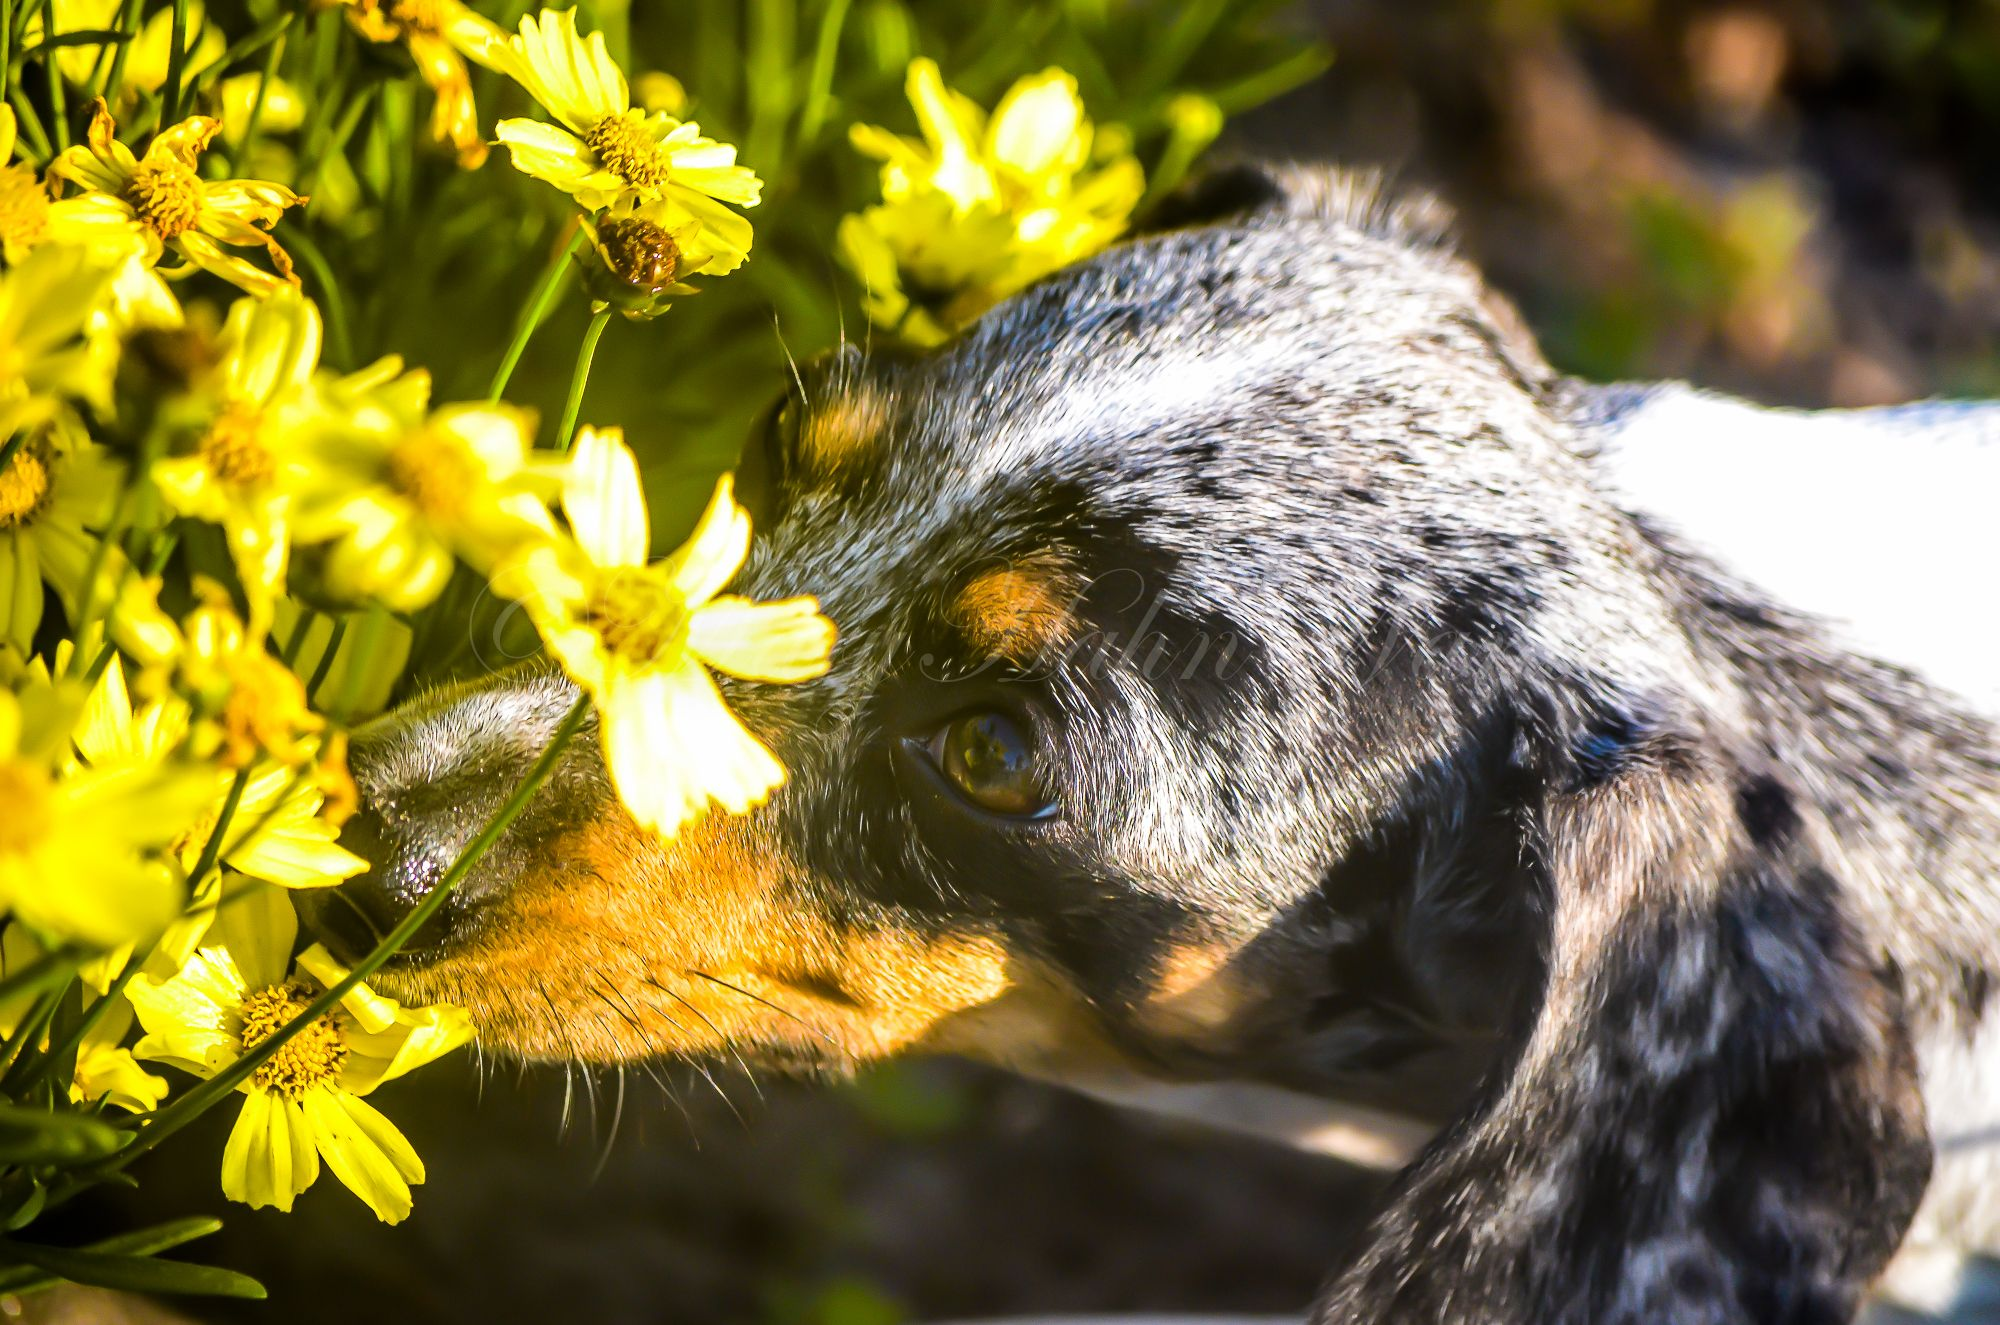 Takin' the time to smell the flowers